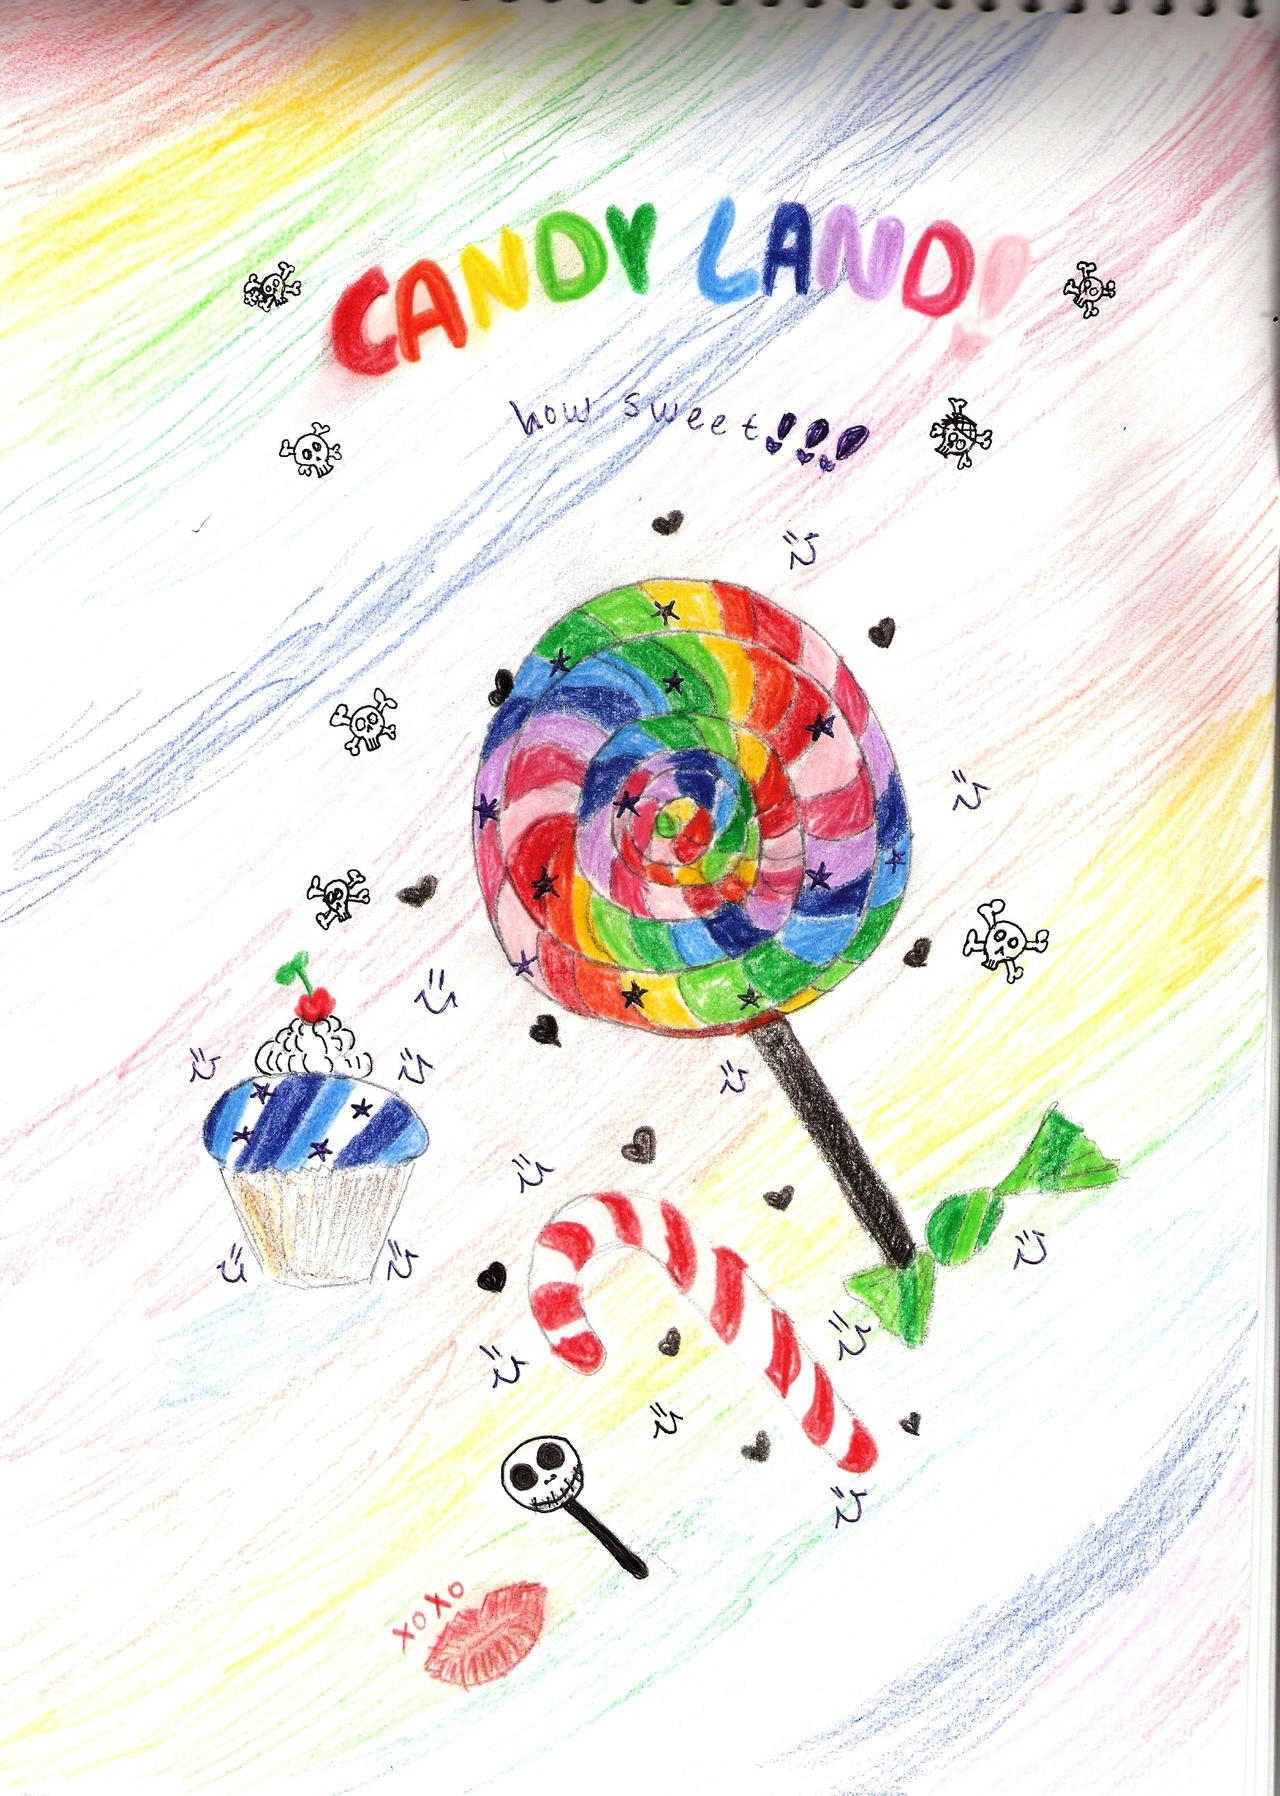 How to draw candy land